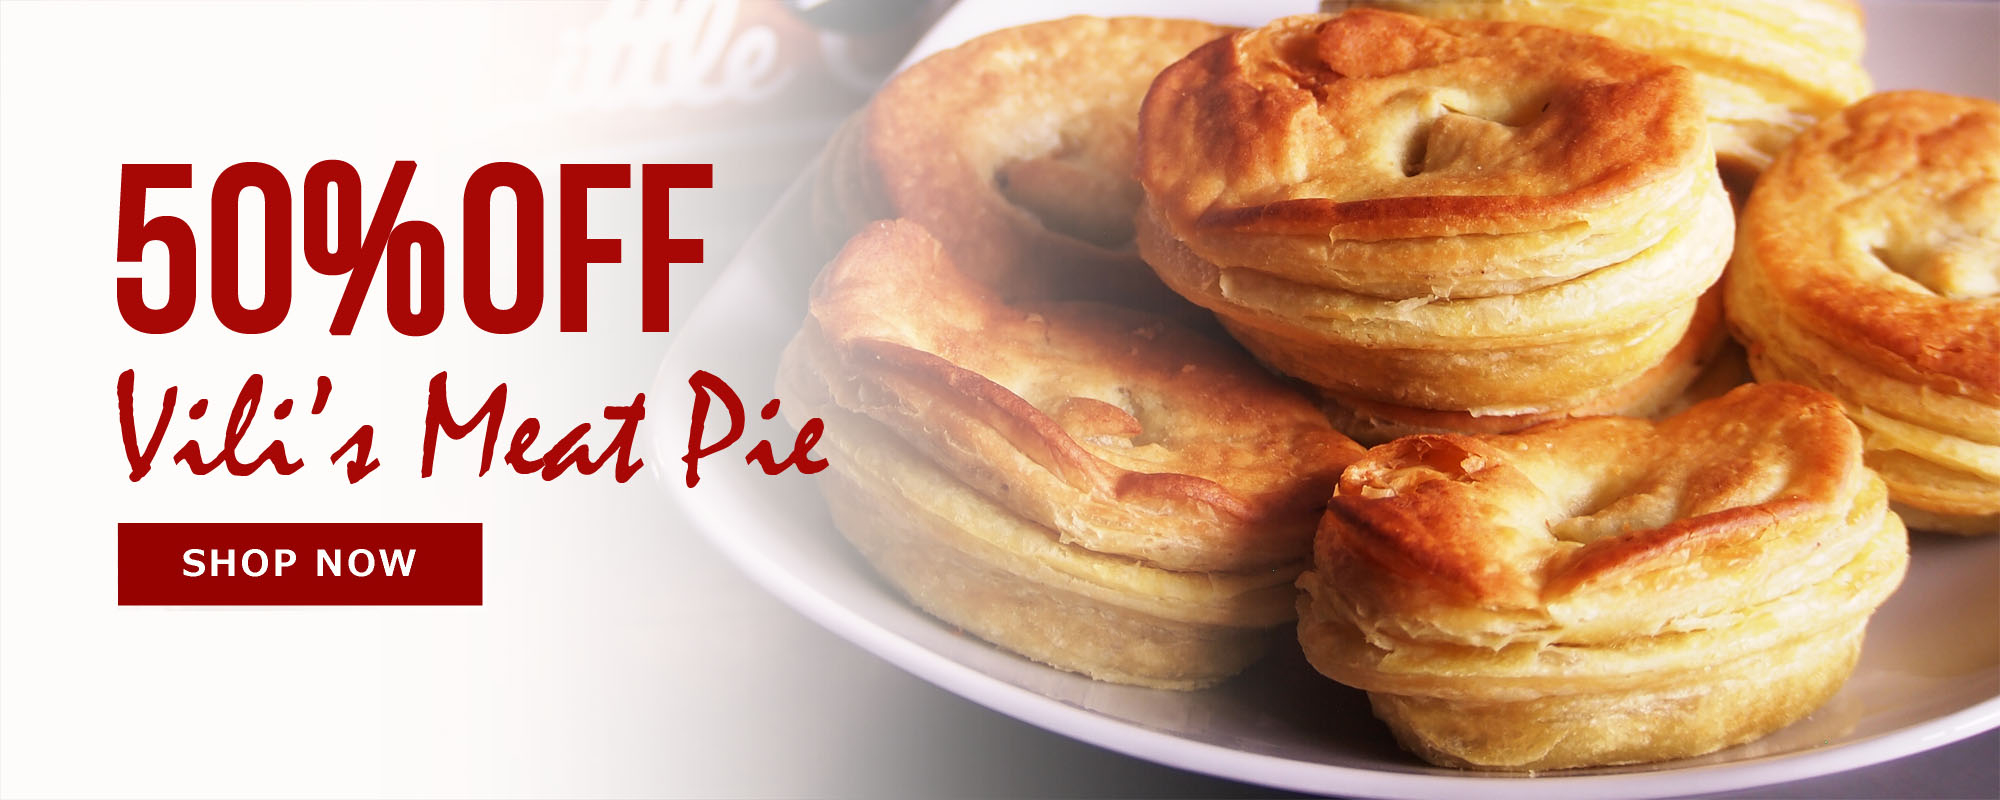 Meatpie50%OFF